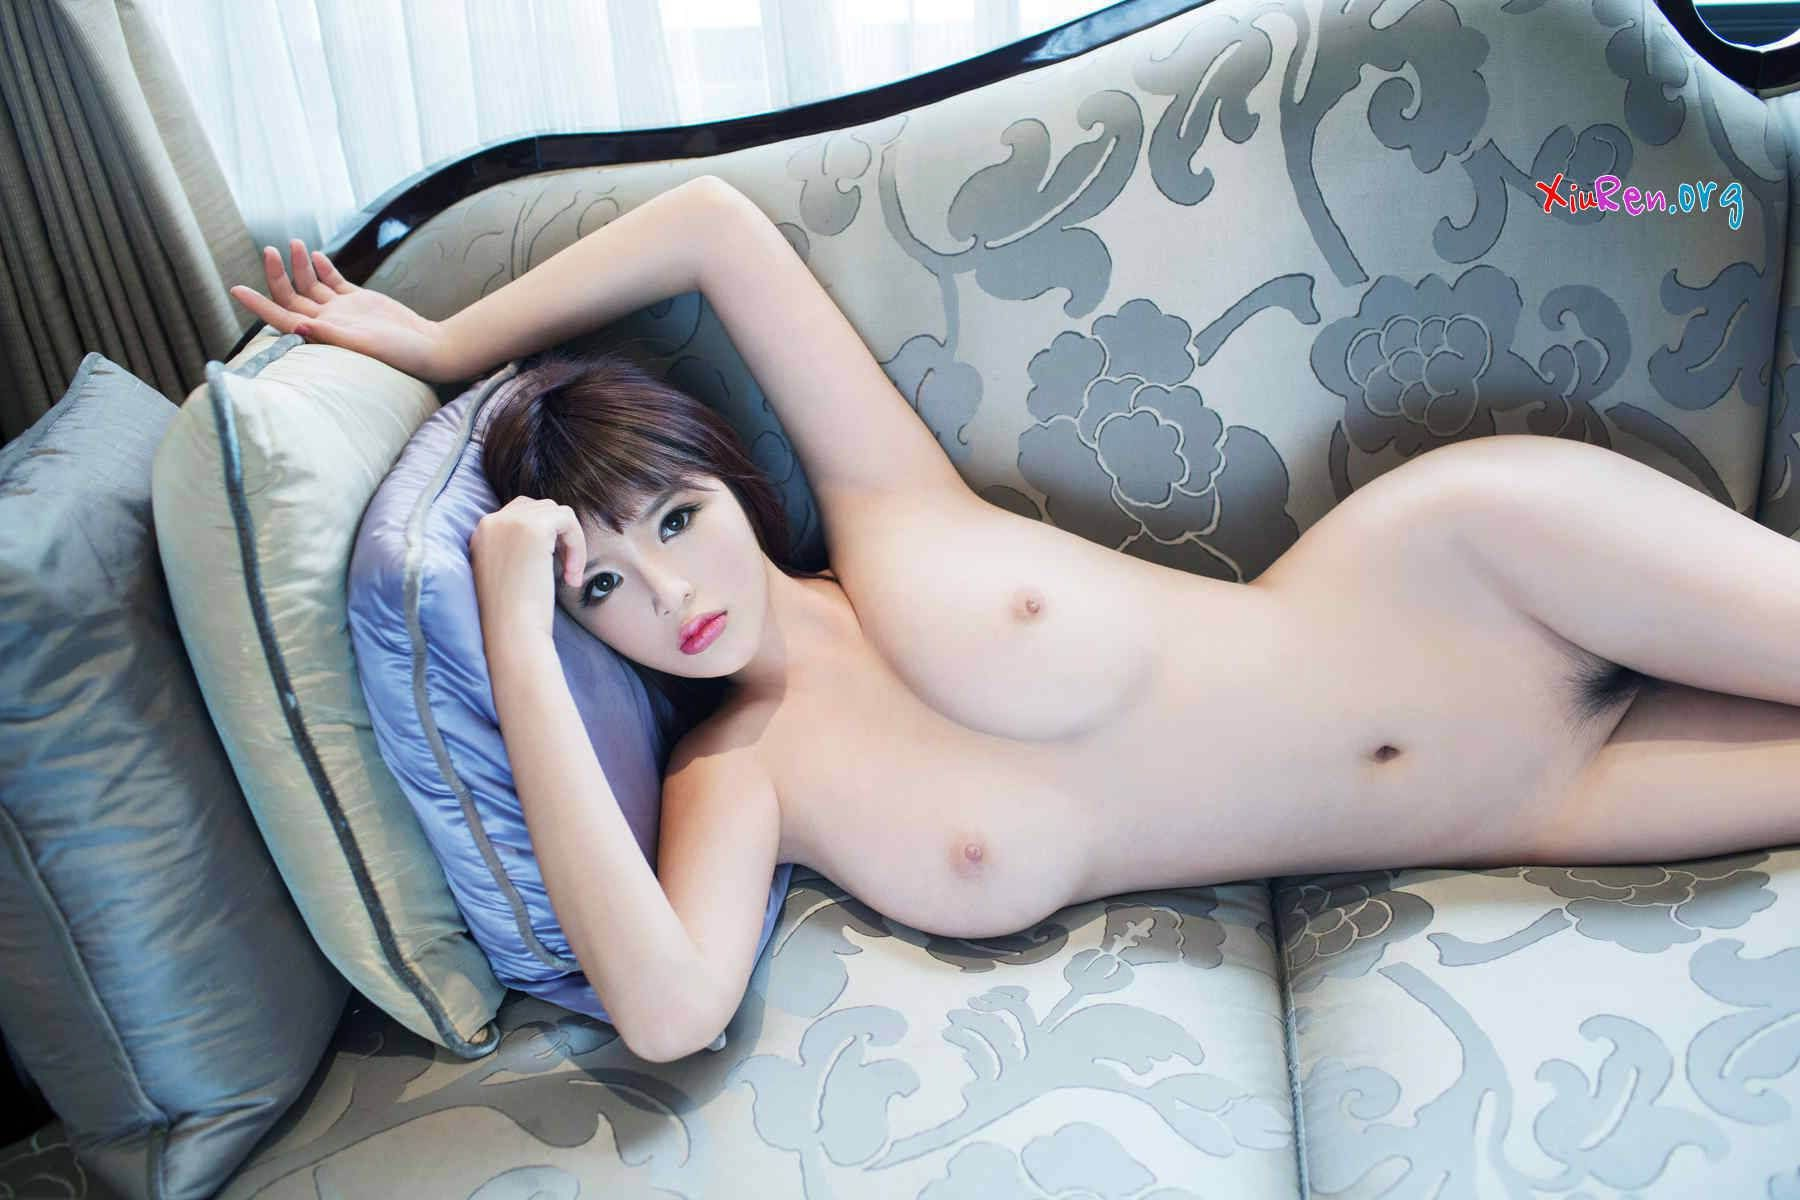 Kawanishi fake nude riko